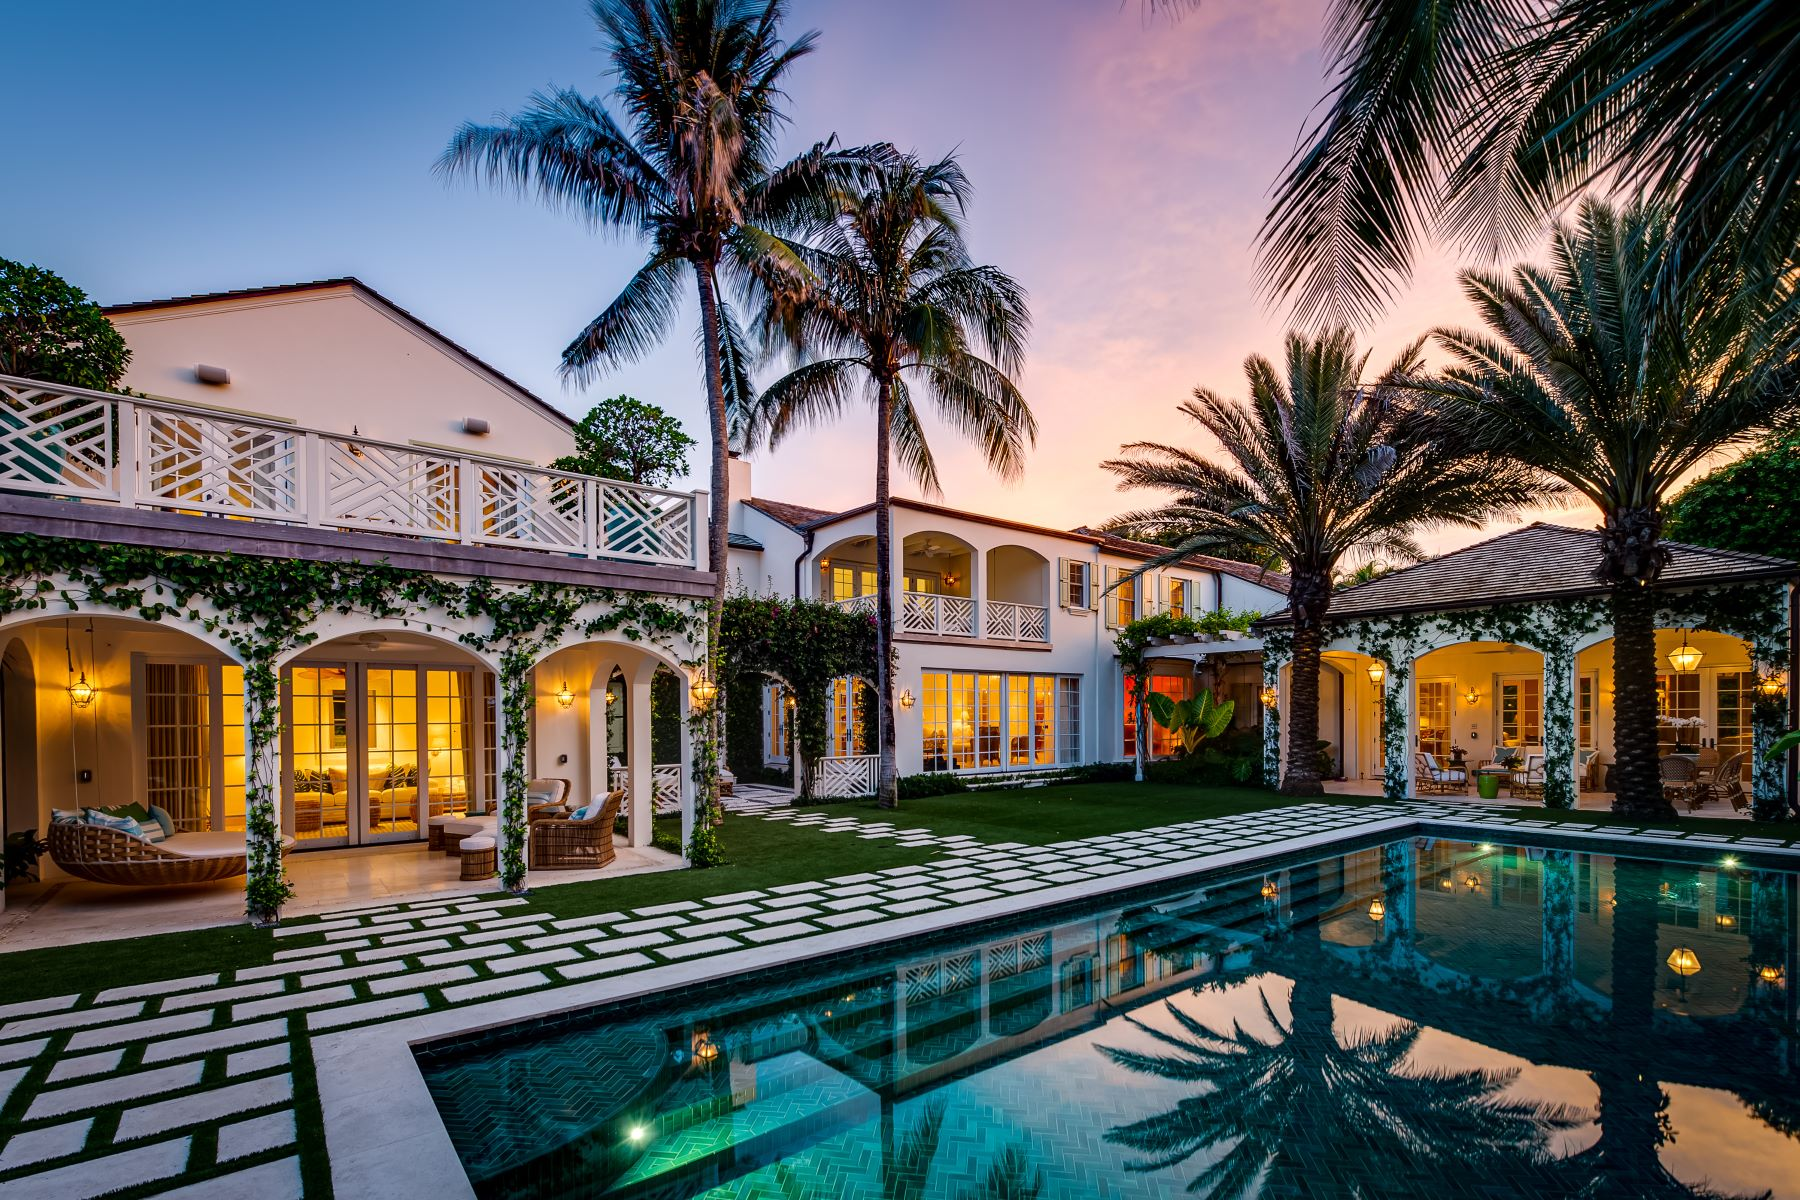 Single Family Homes for Sale at Gulfstream Road Estate 135 Gulfstream Road Palm Beach, Florida 33480 United States